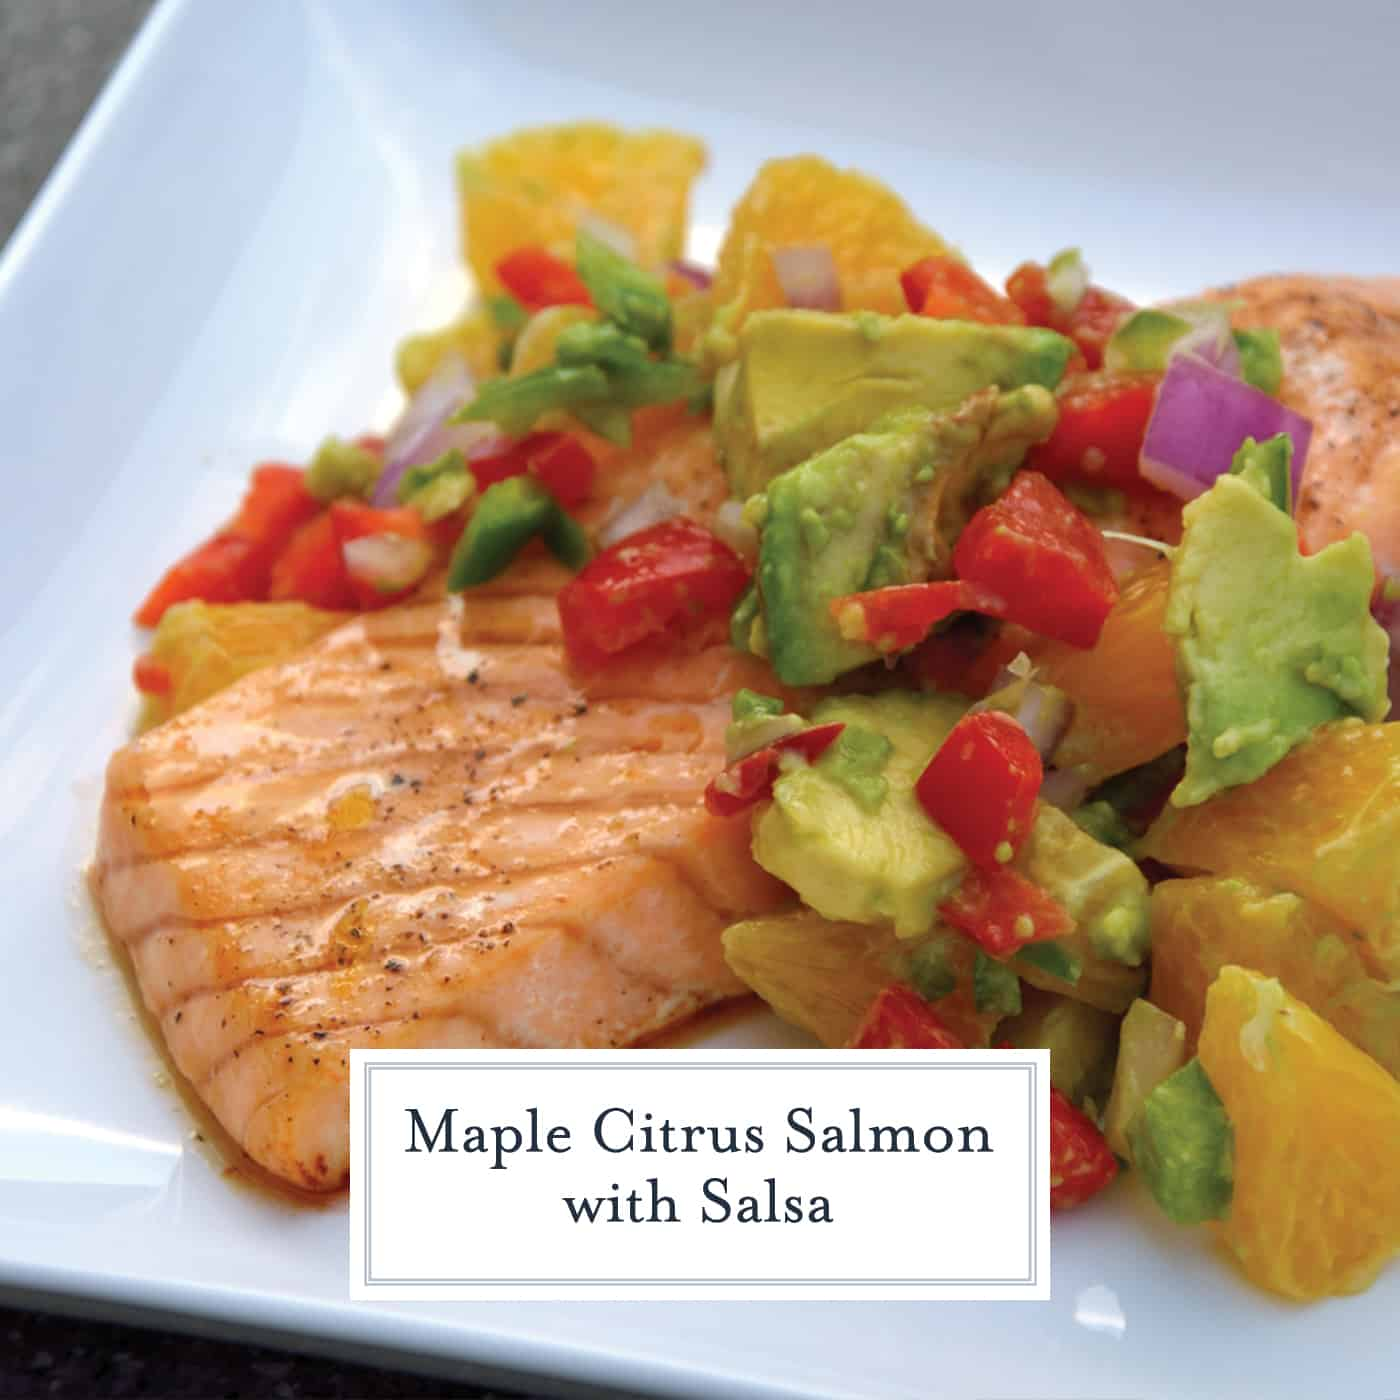 Maple Citrus Salmon with Orange-Avocado Salsa is a healthy and easy baked salmon recipe perfect for any quick weeknight meal.#salmonrecipes #bakedsalmon www.savoryexperiments.com